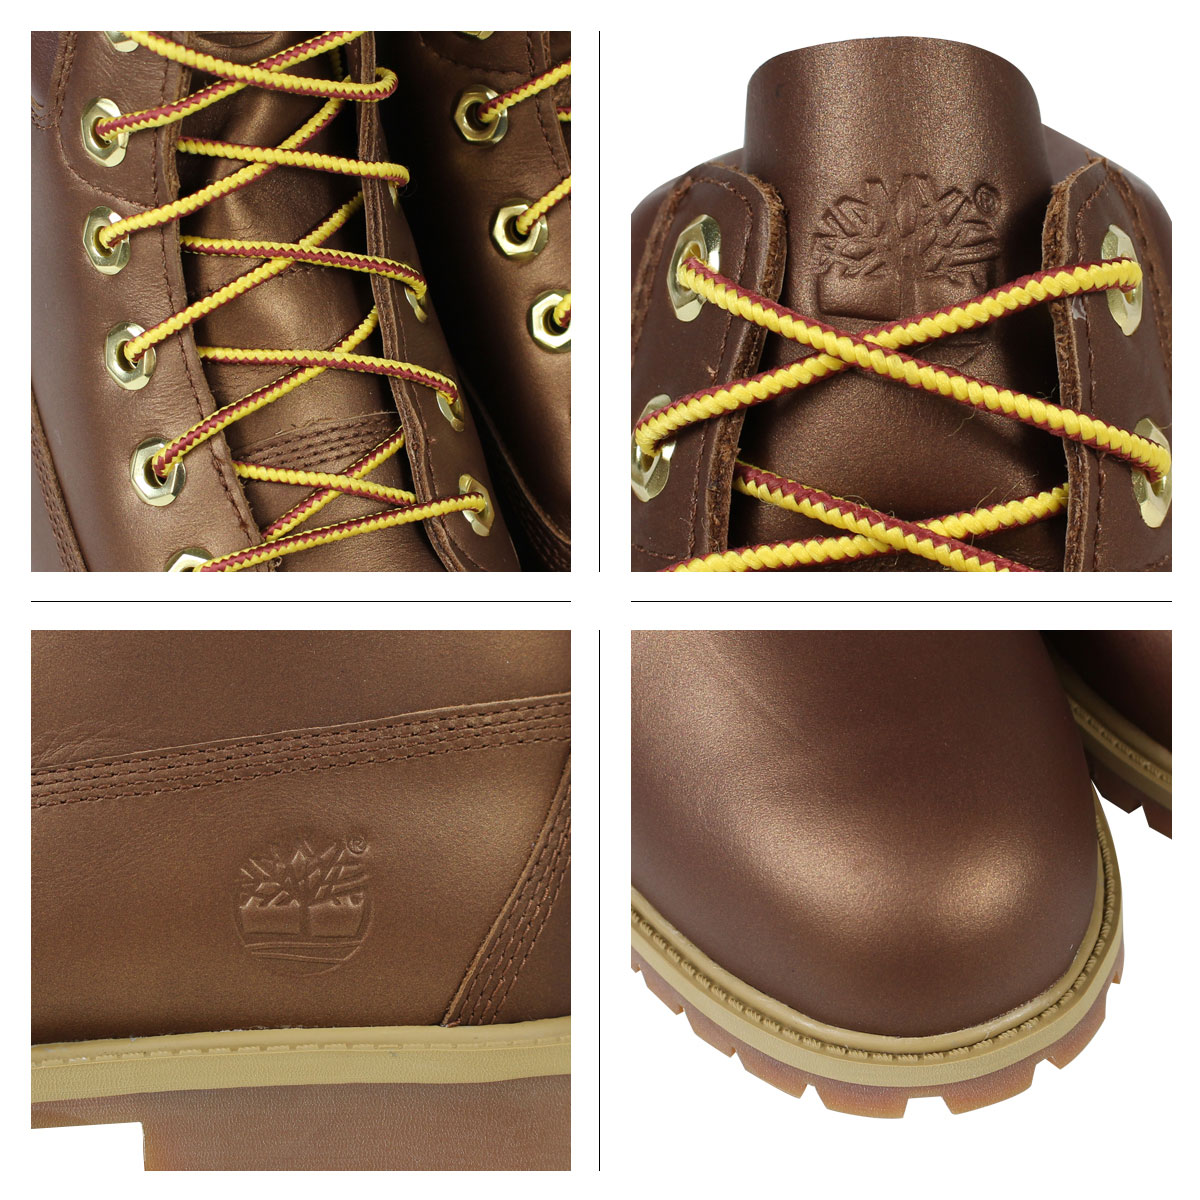 Timberland Timberland Lady's 6INCHI 6 inches premium boots WOMENS 6 INCH PREMIUM WATERPROOF BOOTS A19XM W Wise waterproofing brown